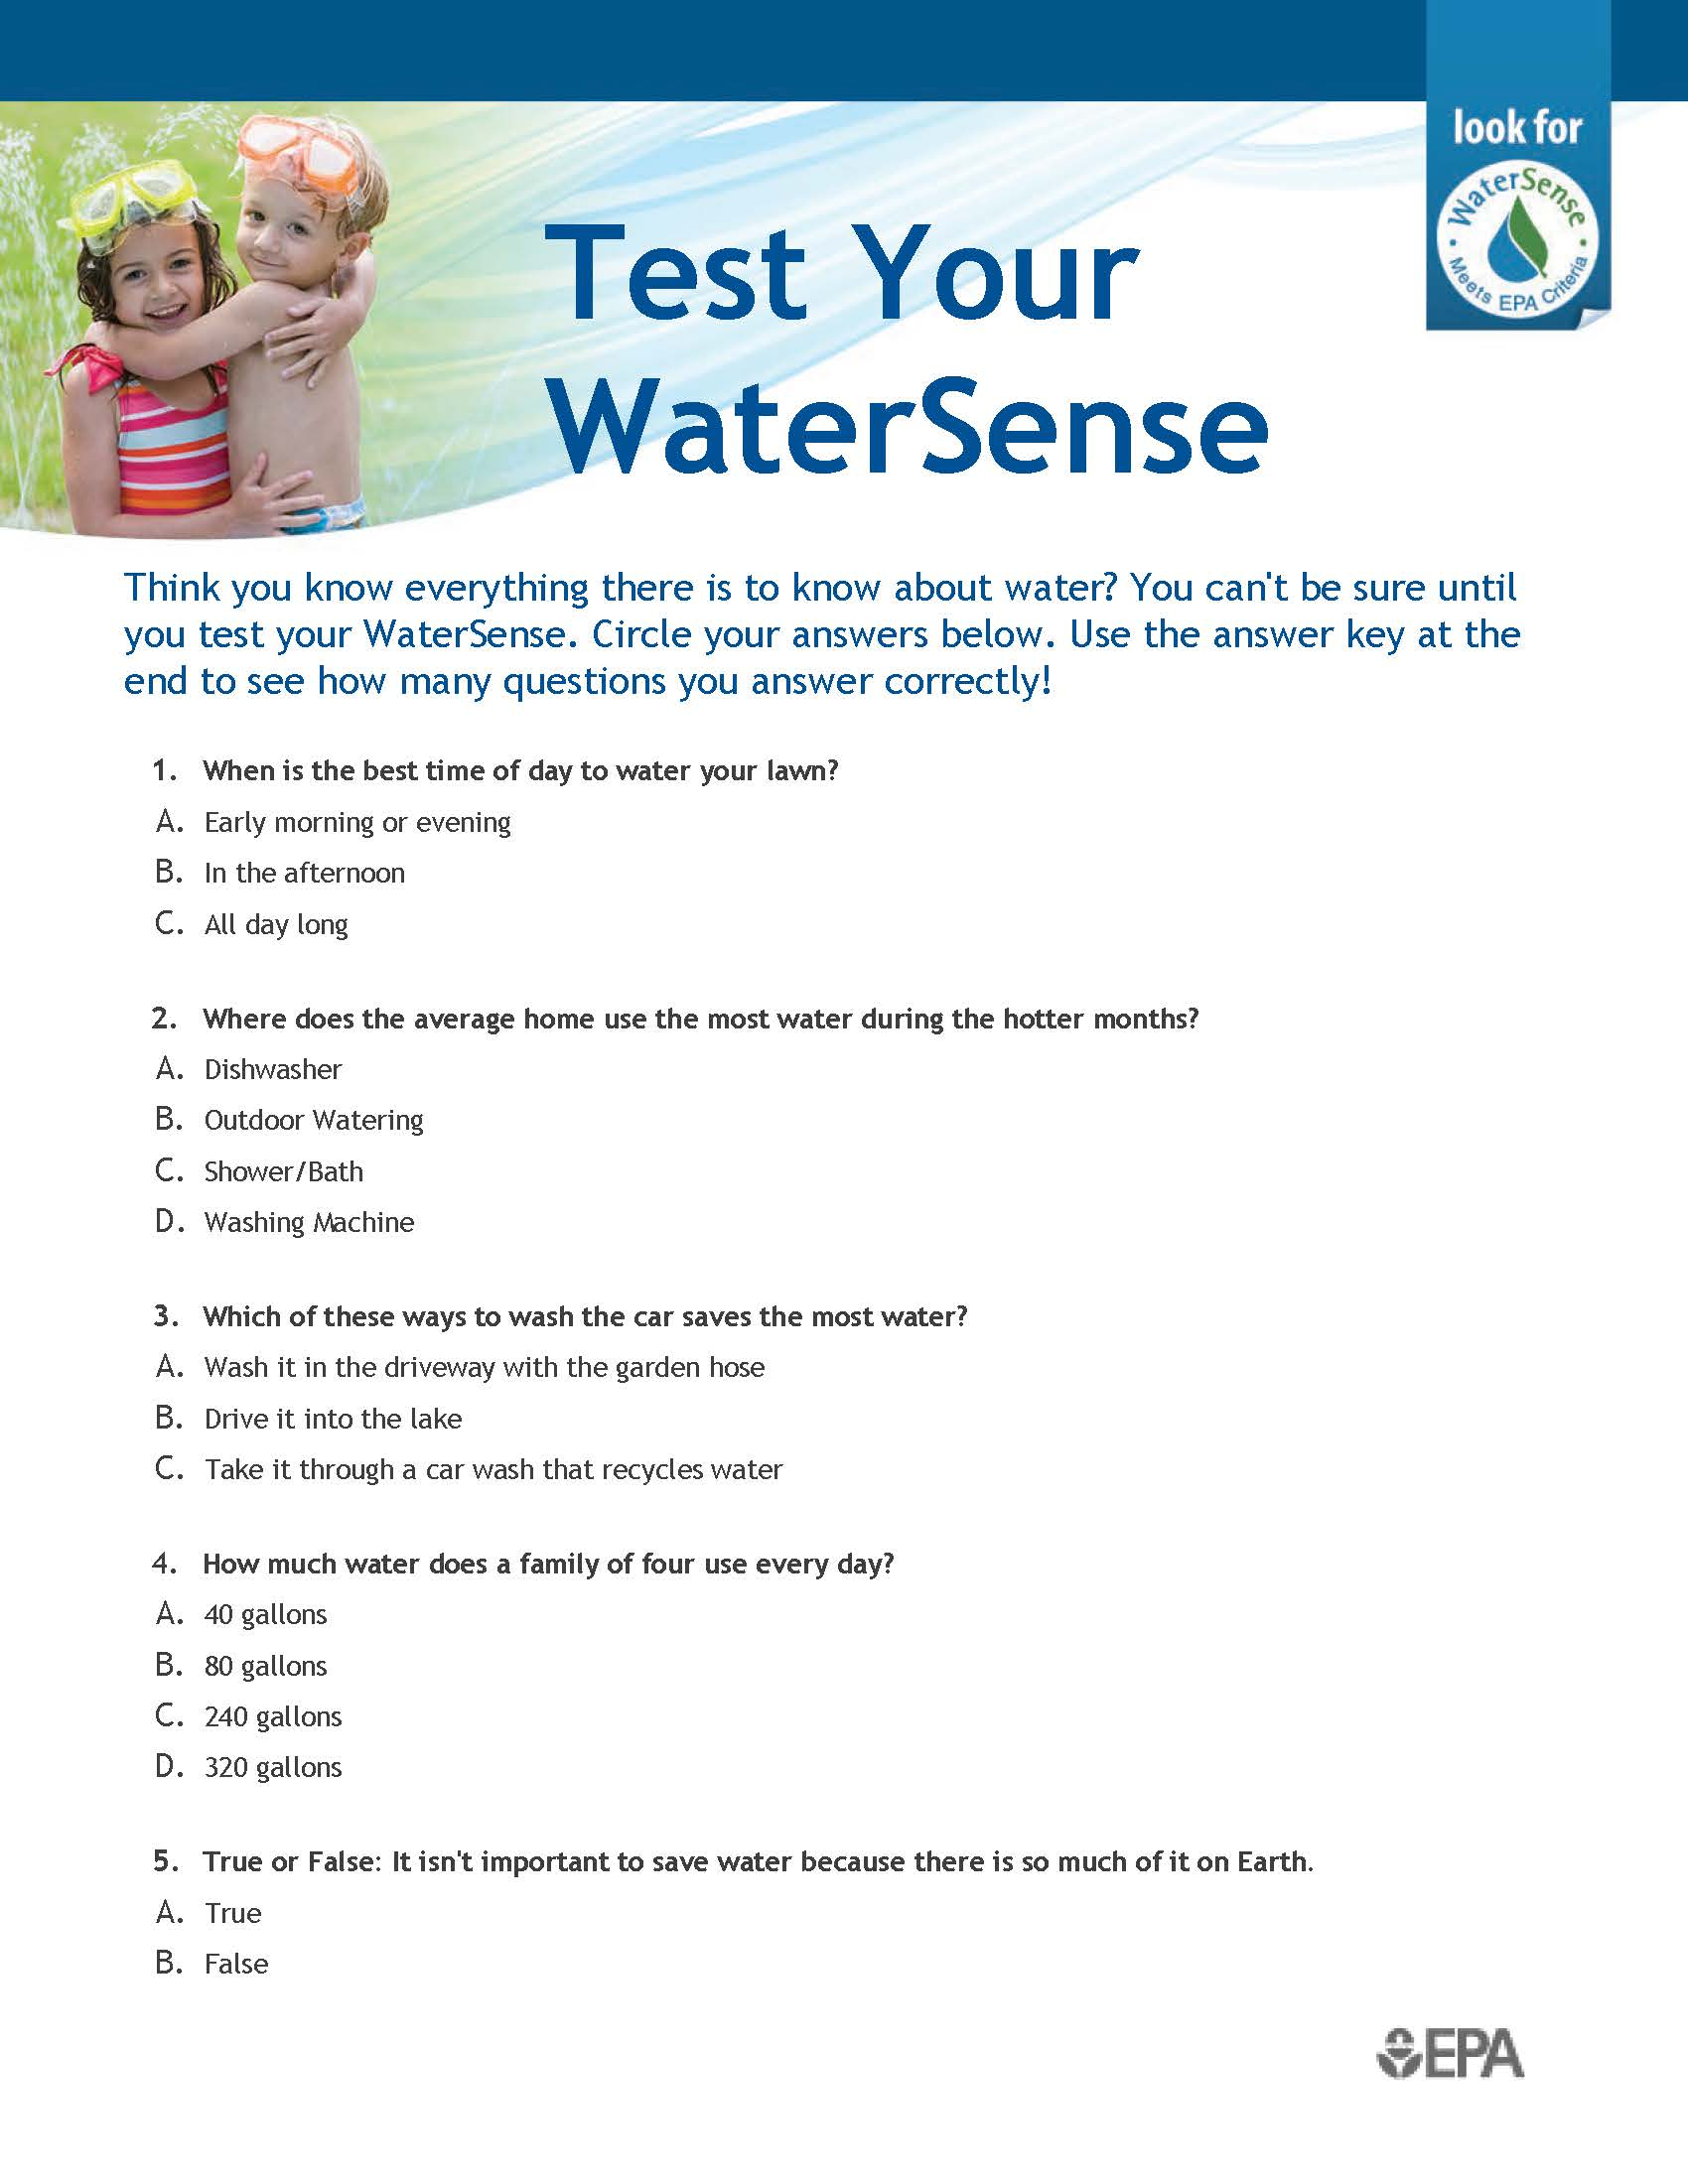 test-your-watersense_Page_1